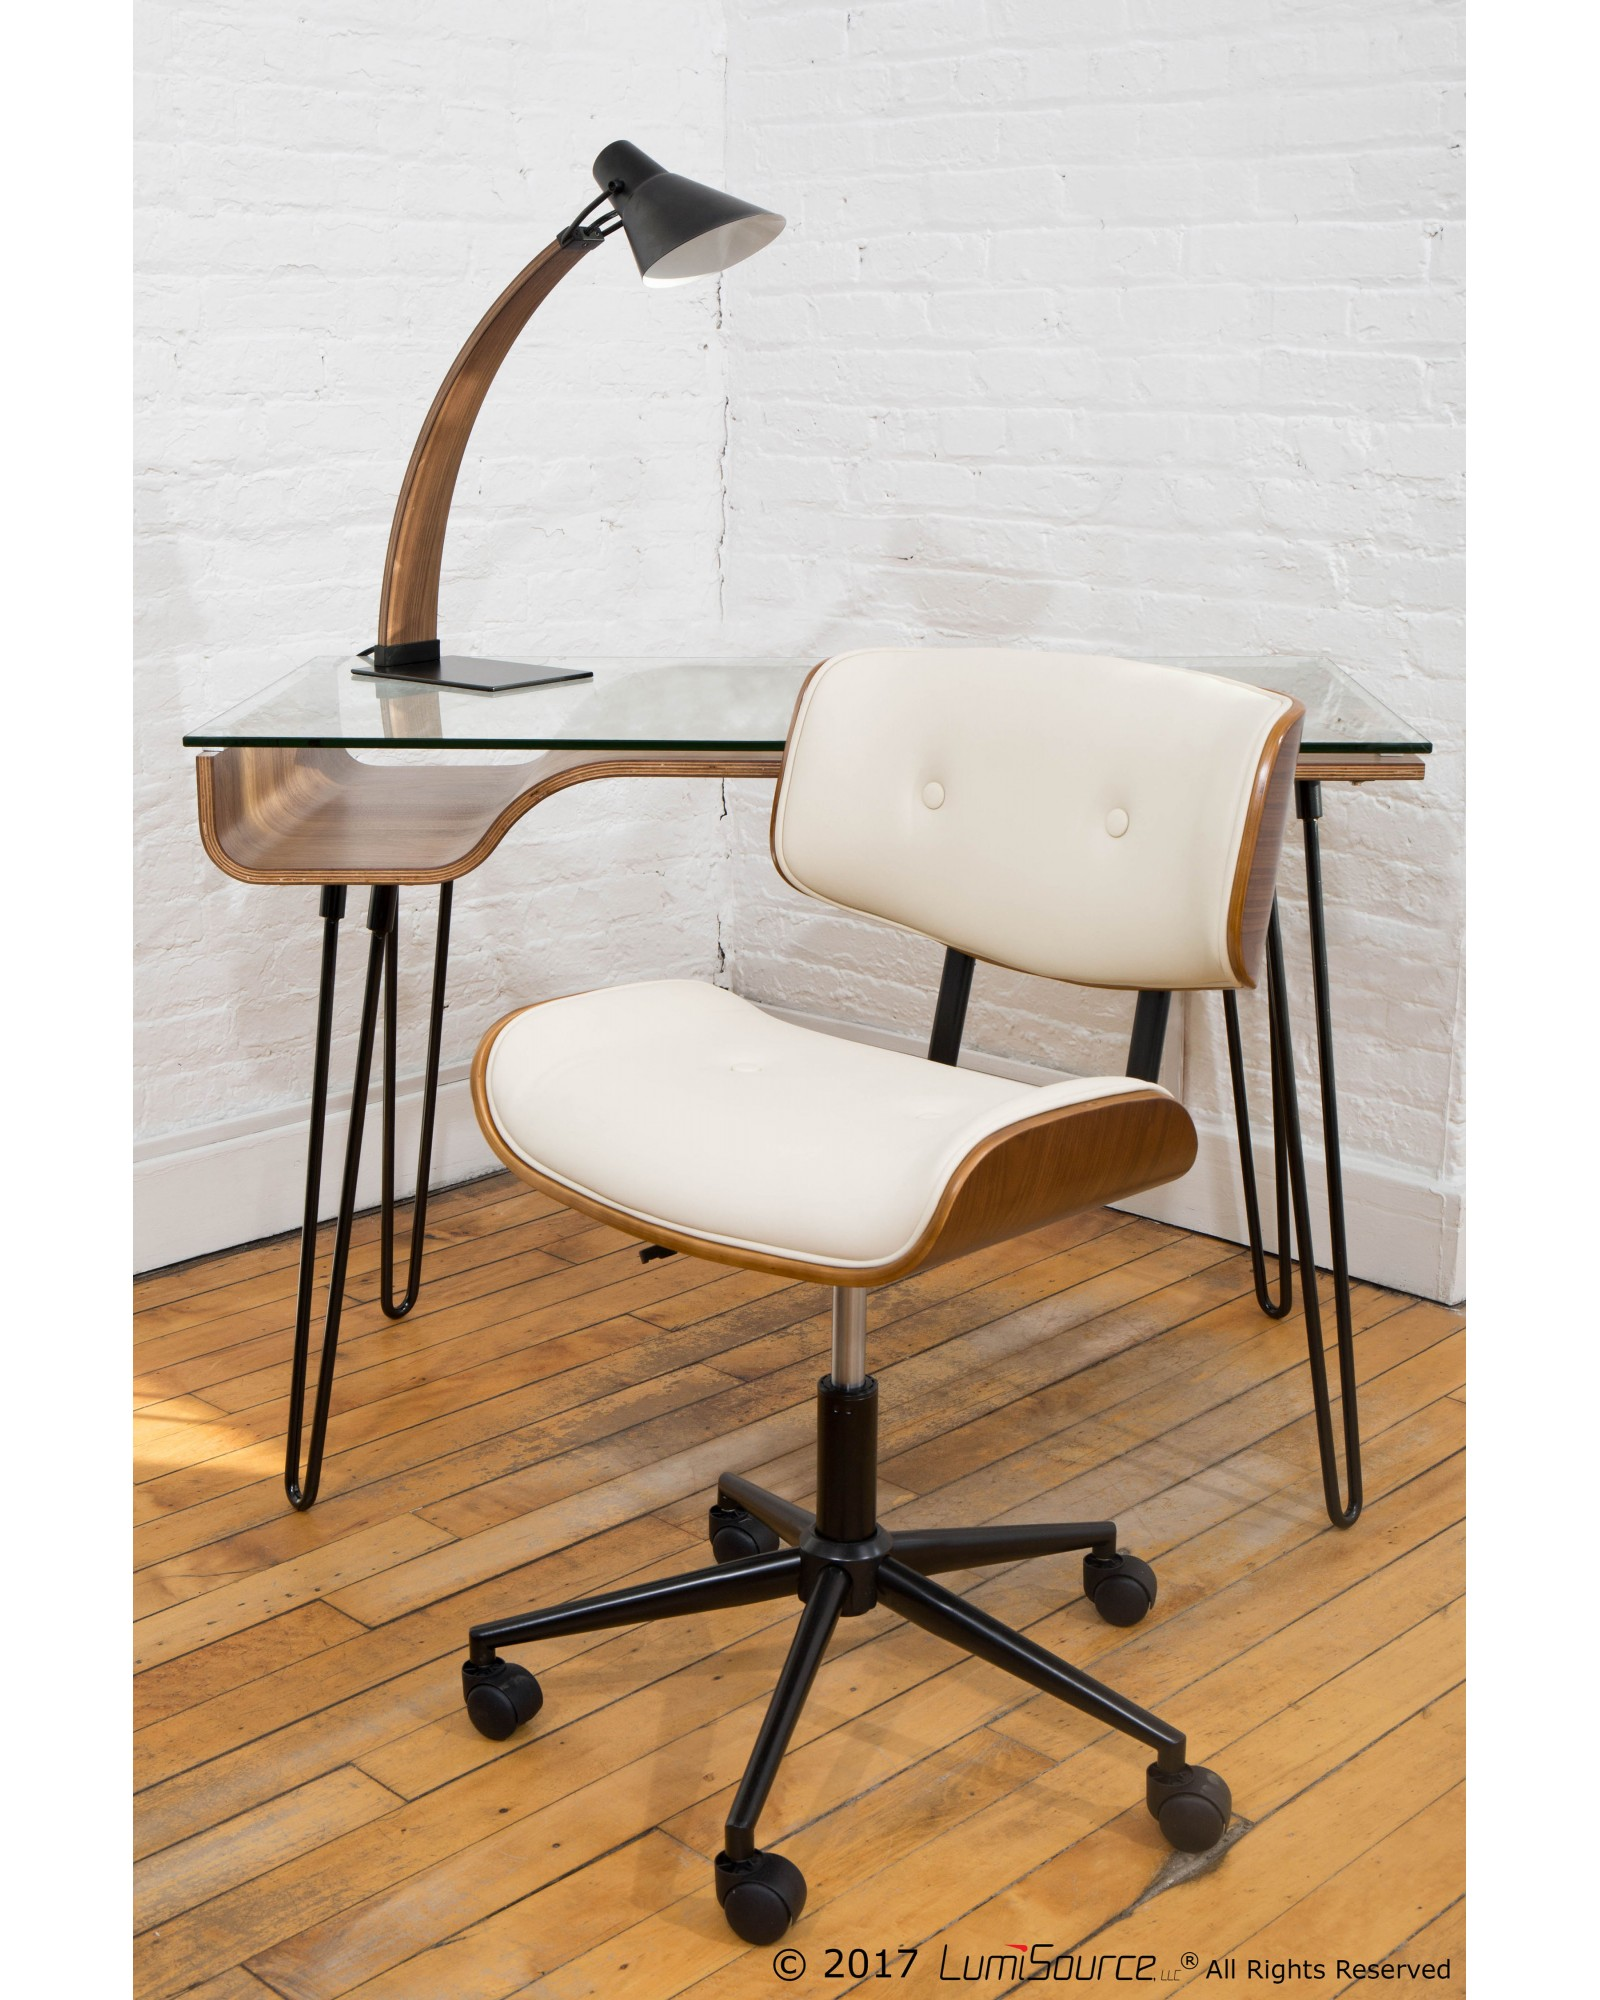 Lombardi Mid-Century Modern Adjustable Office Chair with Swivel in Walnut and Cream